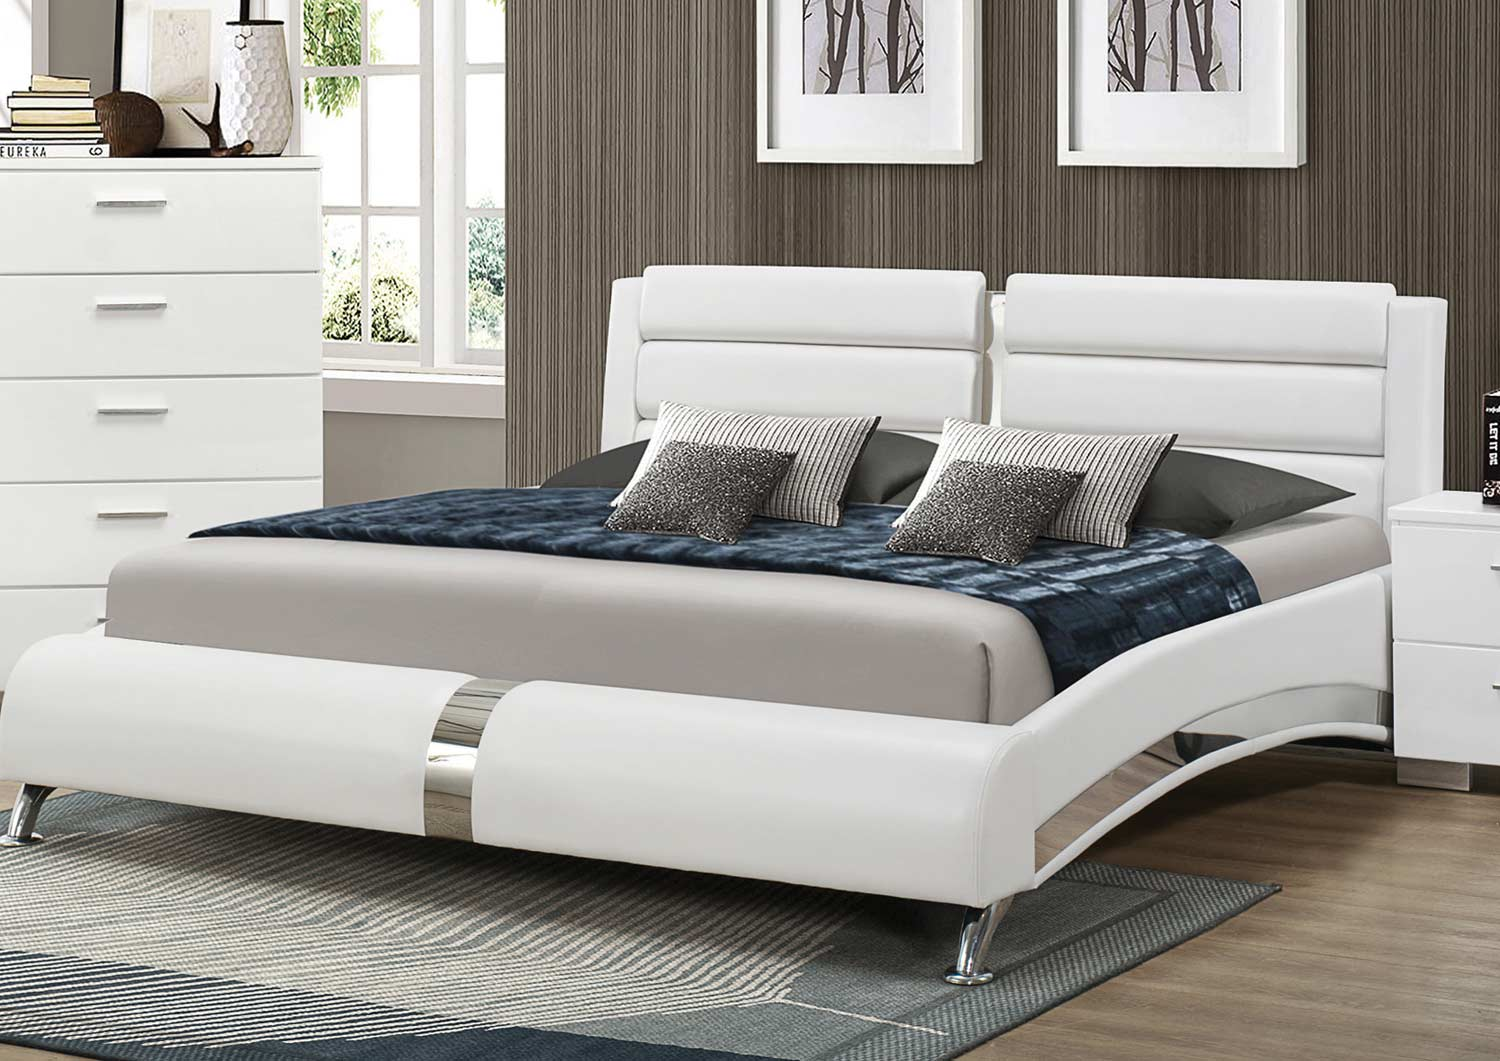 Coaster felicity bedroom set white 203501 bed set at for Queen size bed furniture